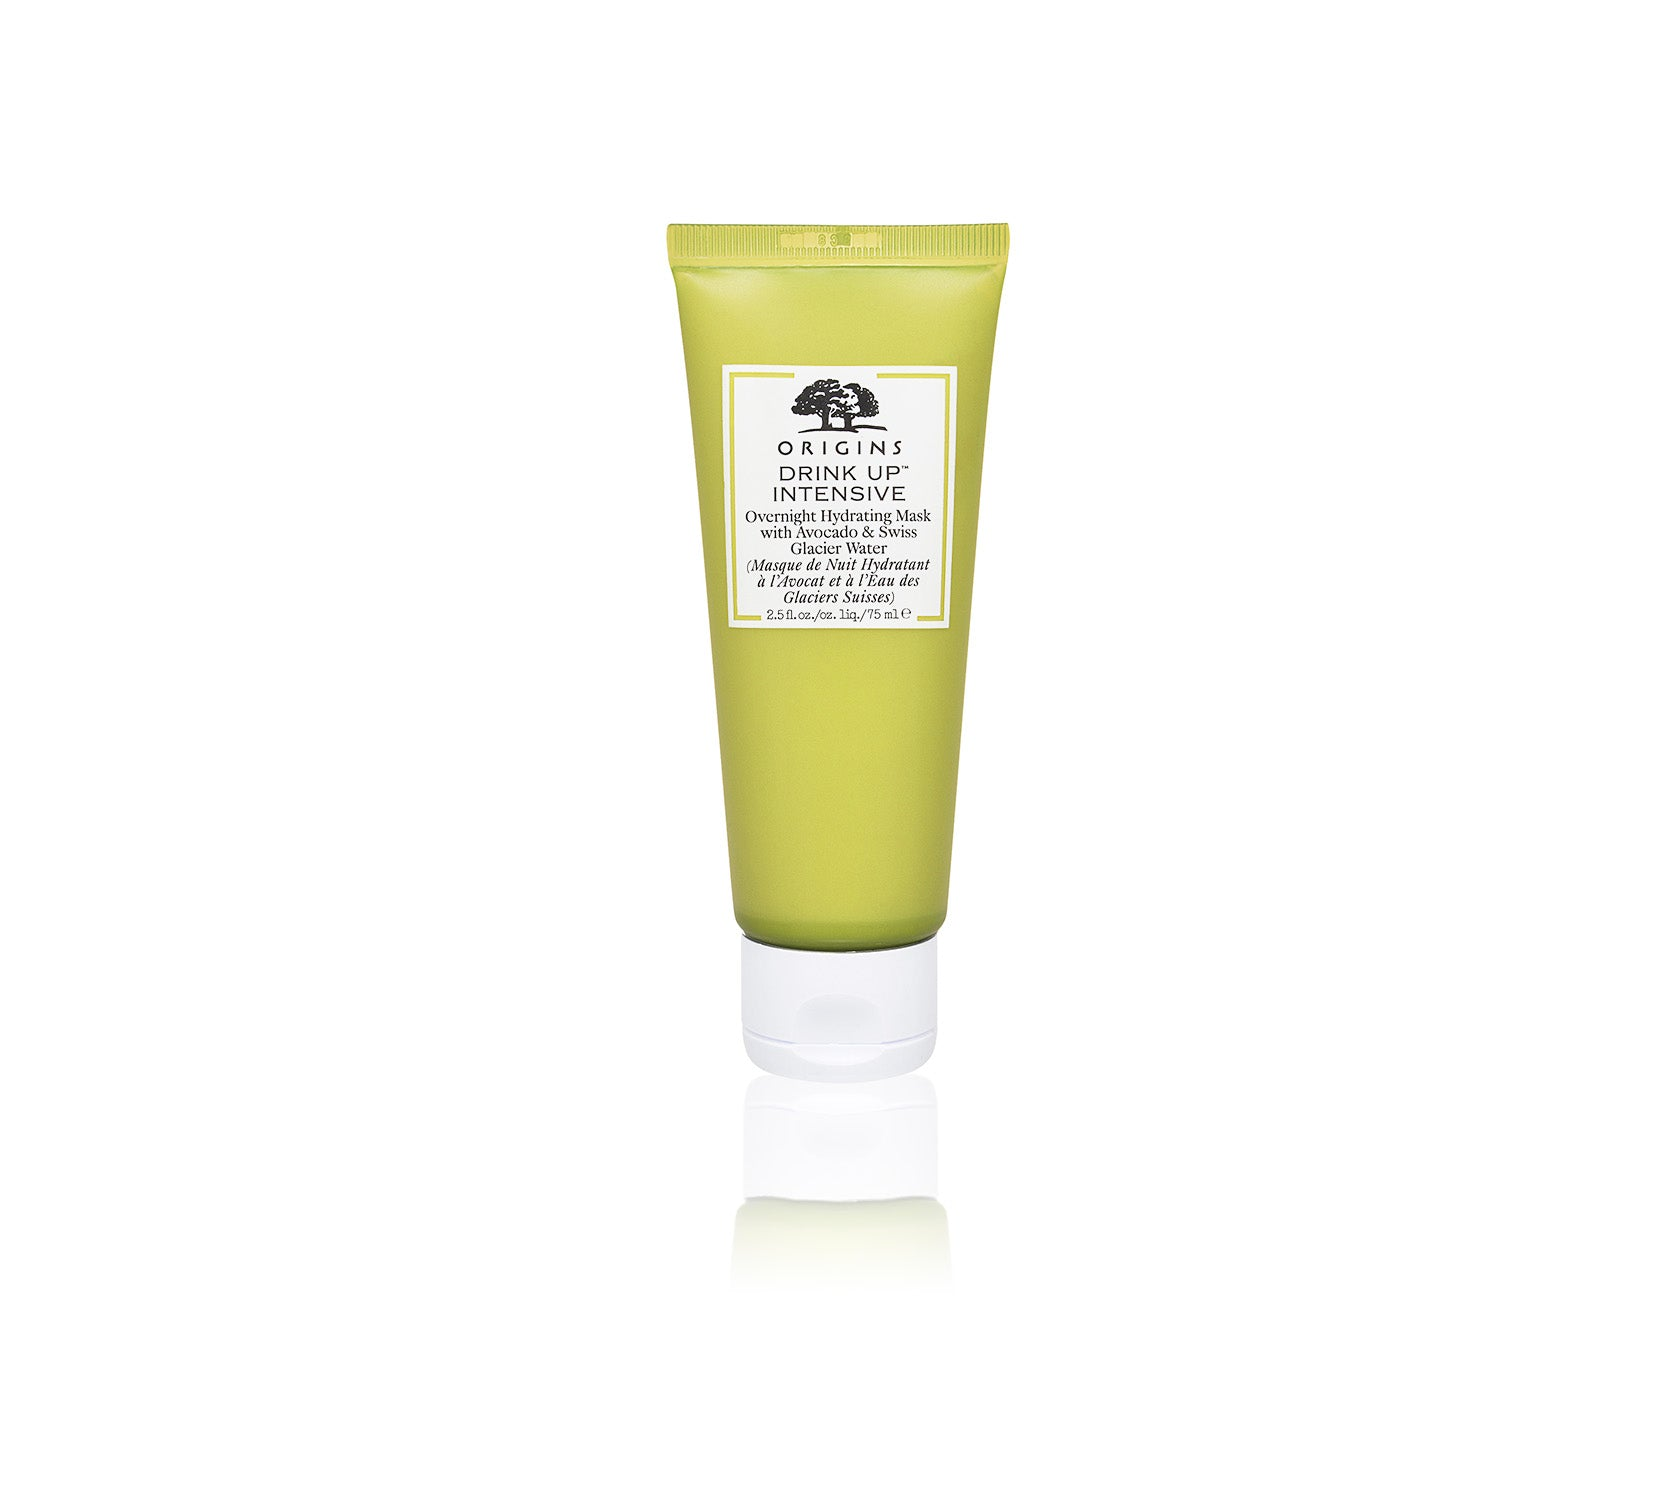 Drink Up Intensive Overnight Hydrating Mask With Avocado & Swiss Glacier Water